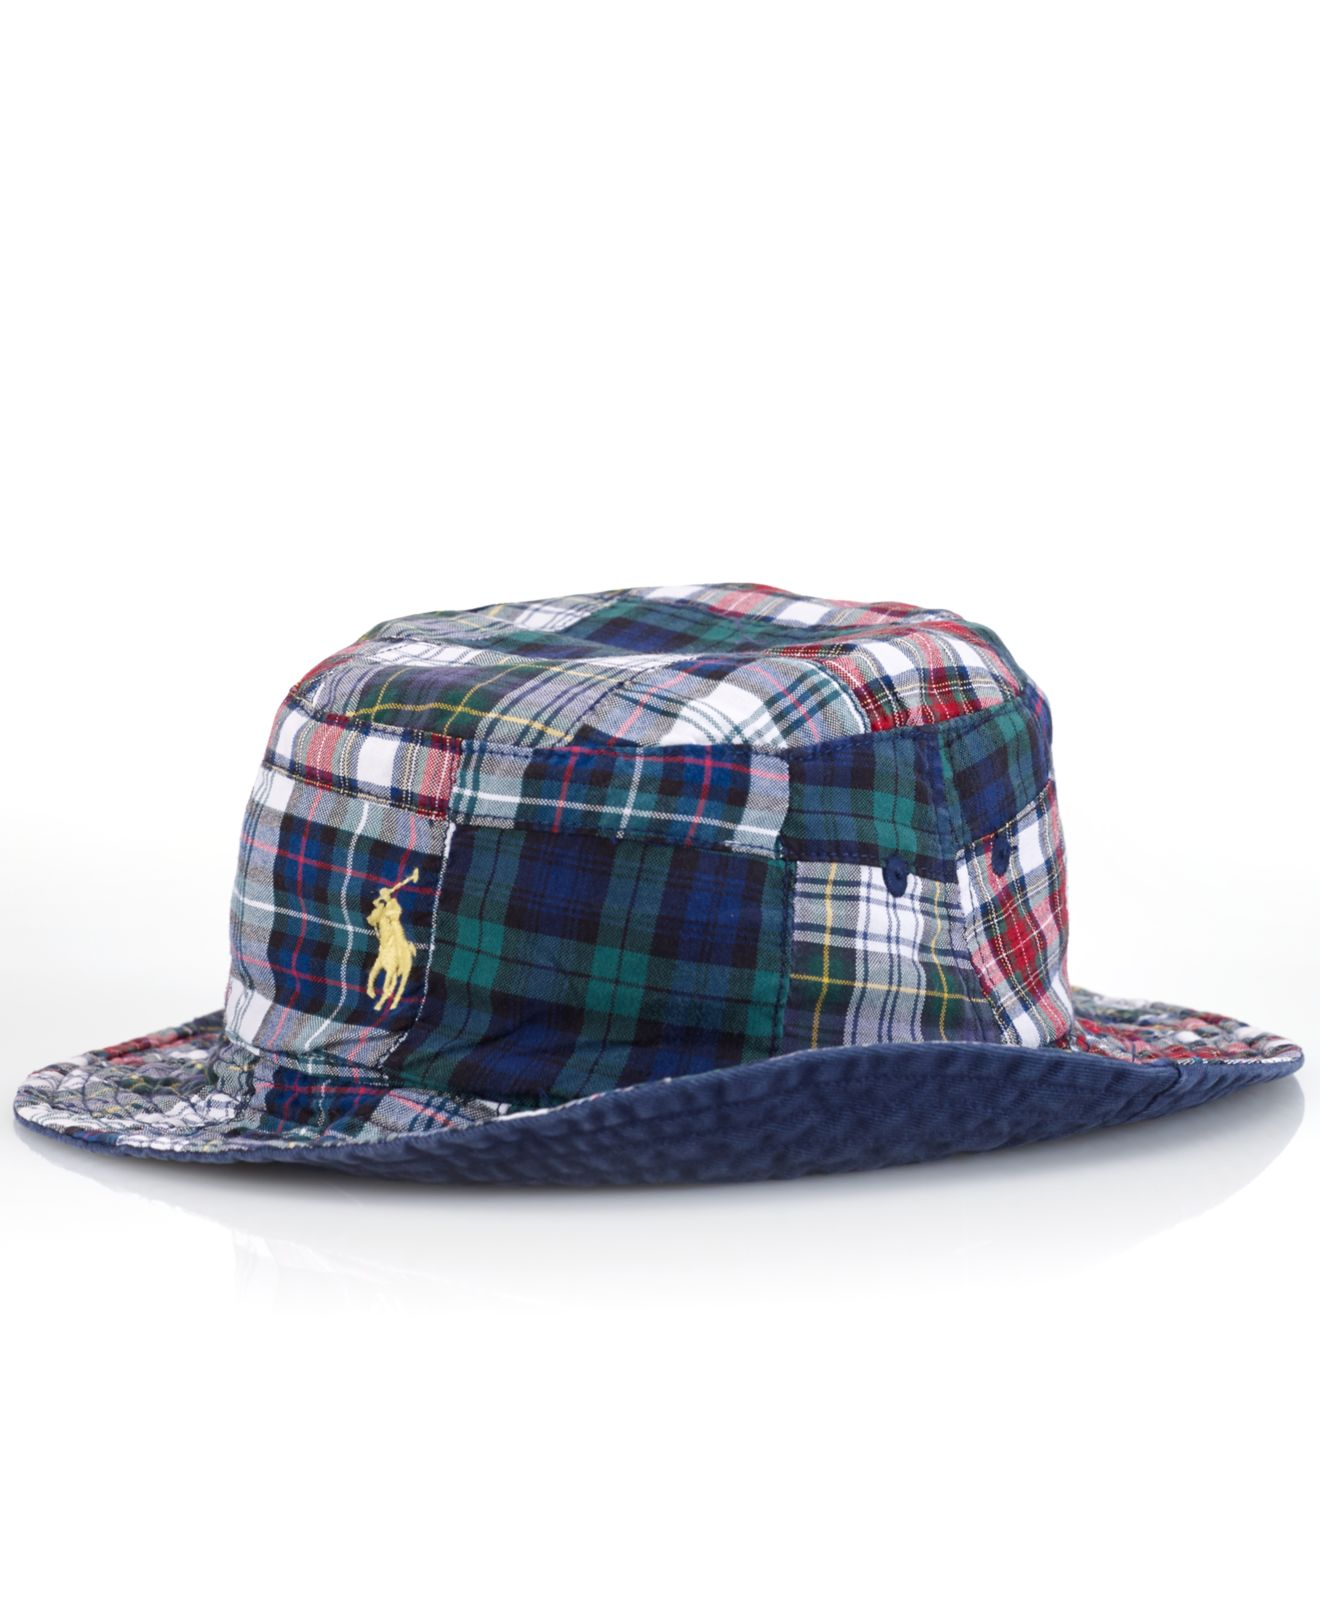 Lyst - Polo Ralph Lauren Reversible Plaid Bucket Hat in Blue for Men 435a2eff083